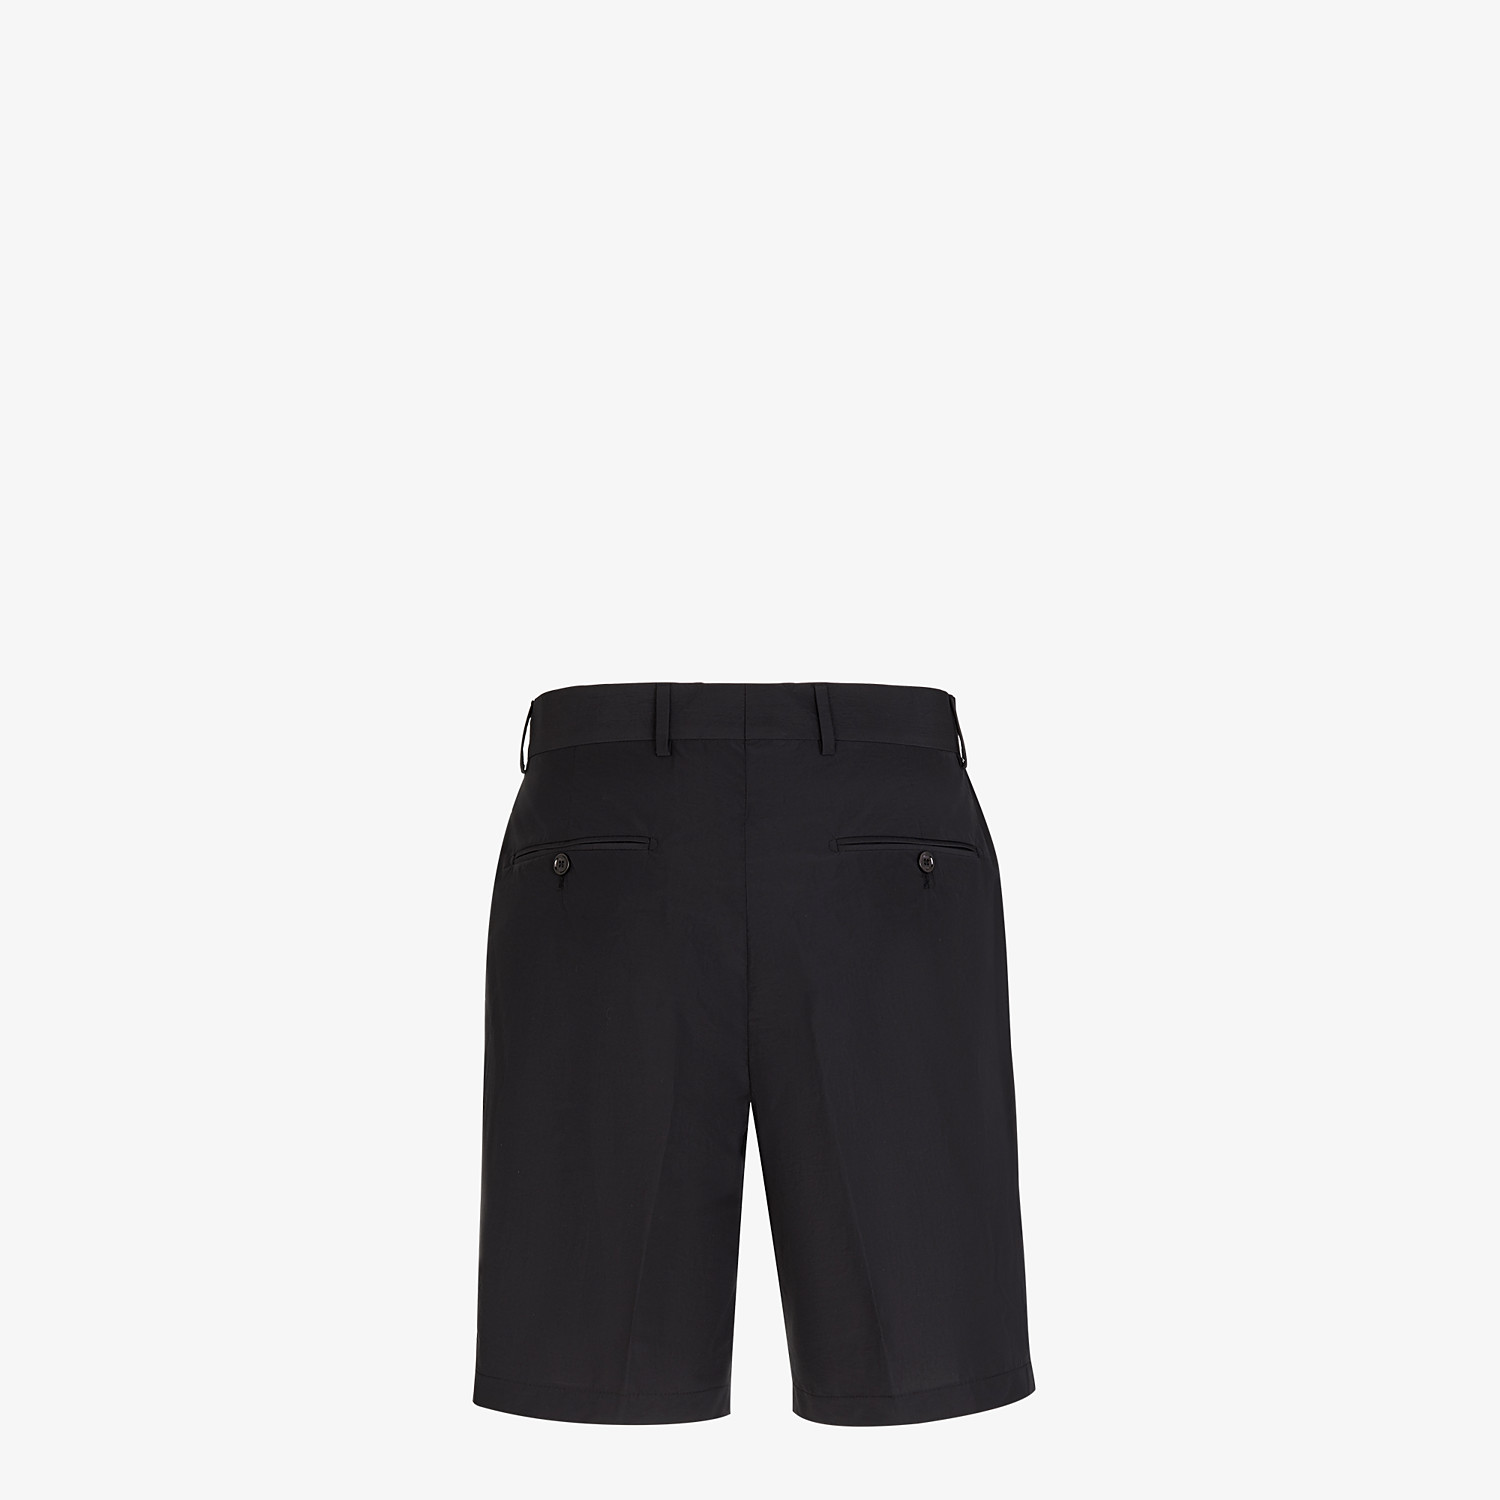 FENDI BERMUDAS - Black nylon and cotton trousers - view 2 detail